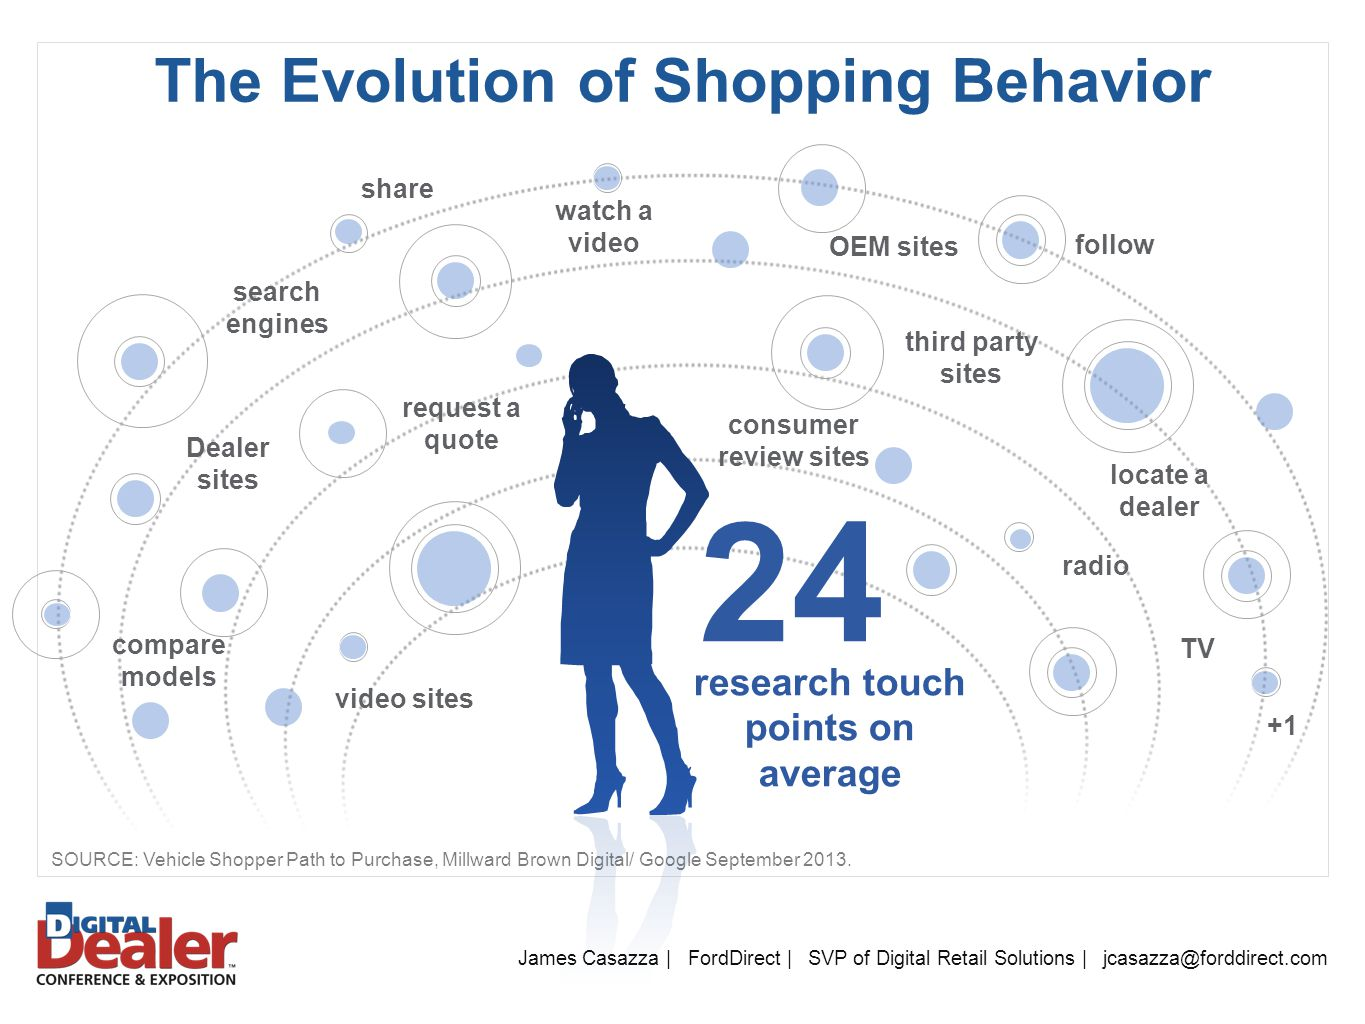 The Evolution of Shopping Behavior